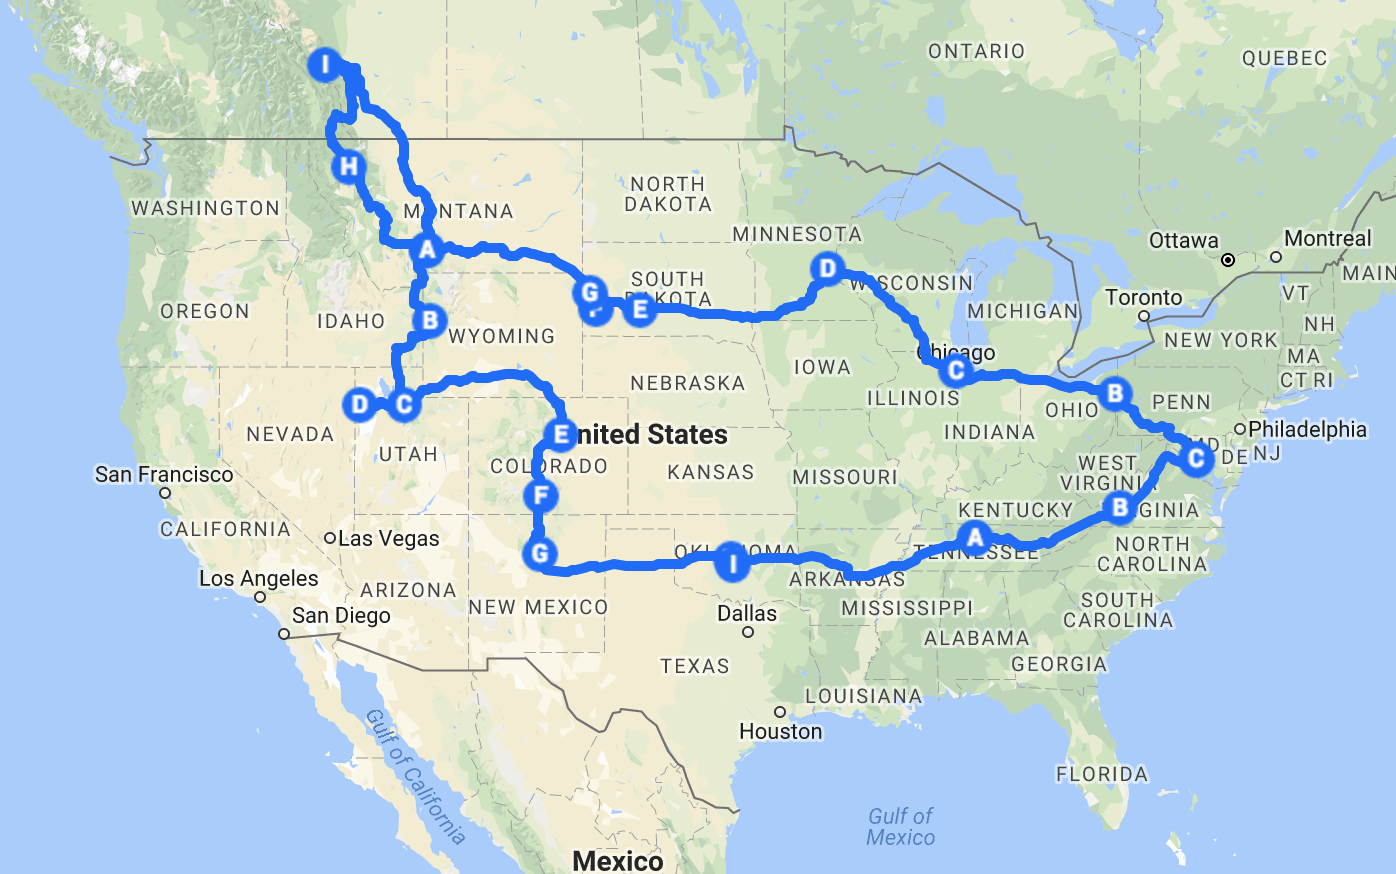 our custom google maps road trip map for #CanuckIfYouBuck 2017